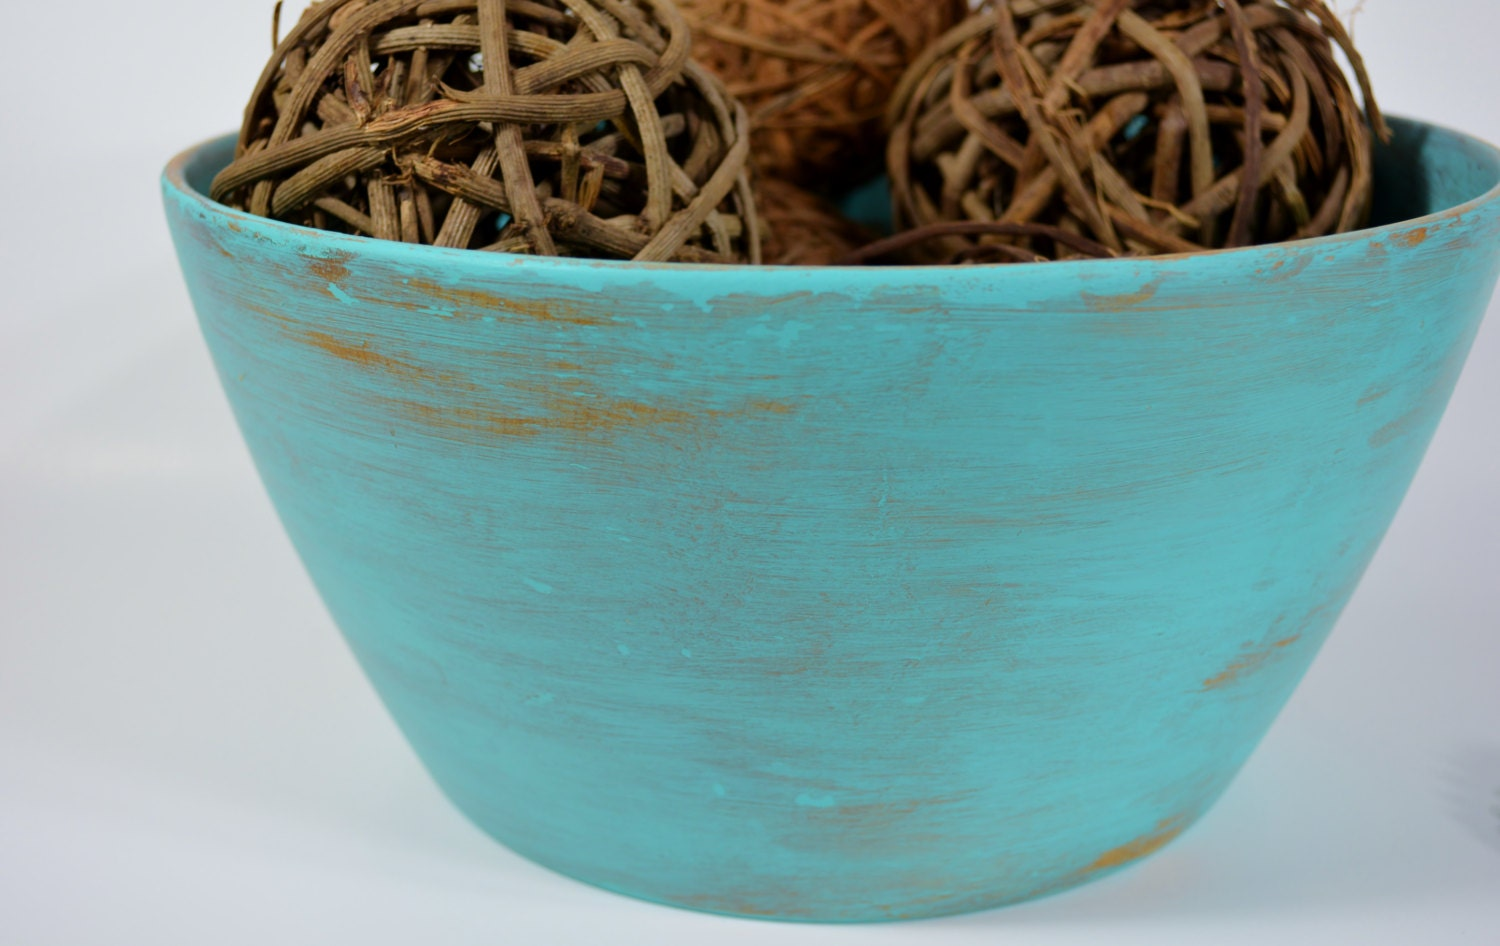 Decorative wooden bowl centerpiece distressed light